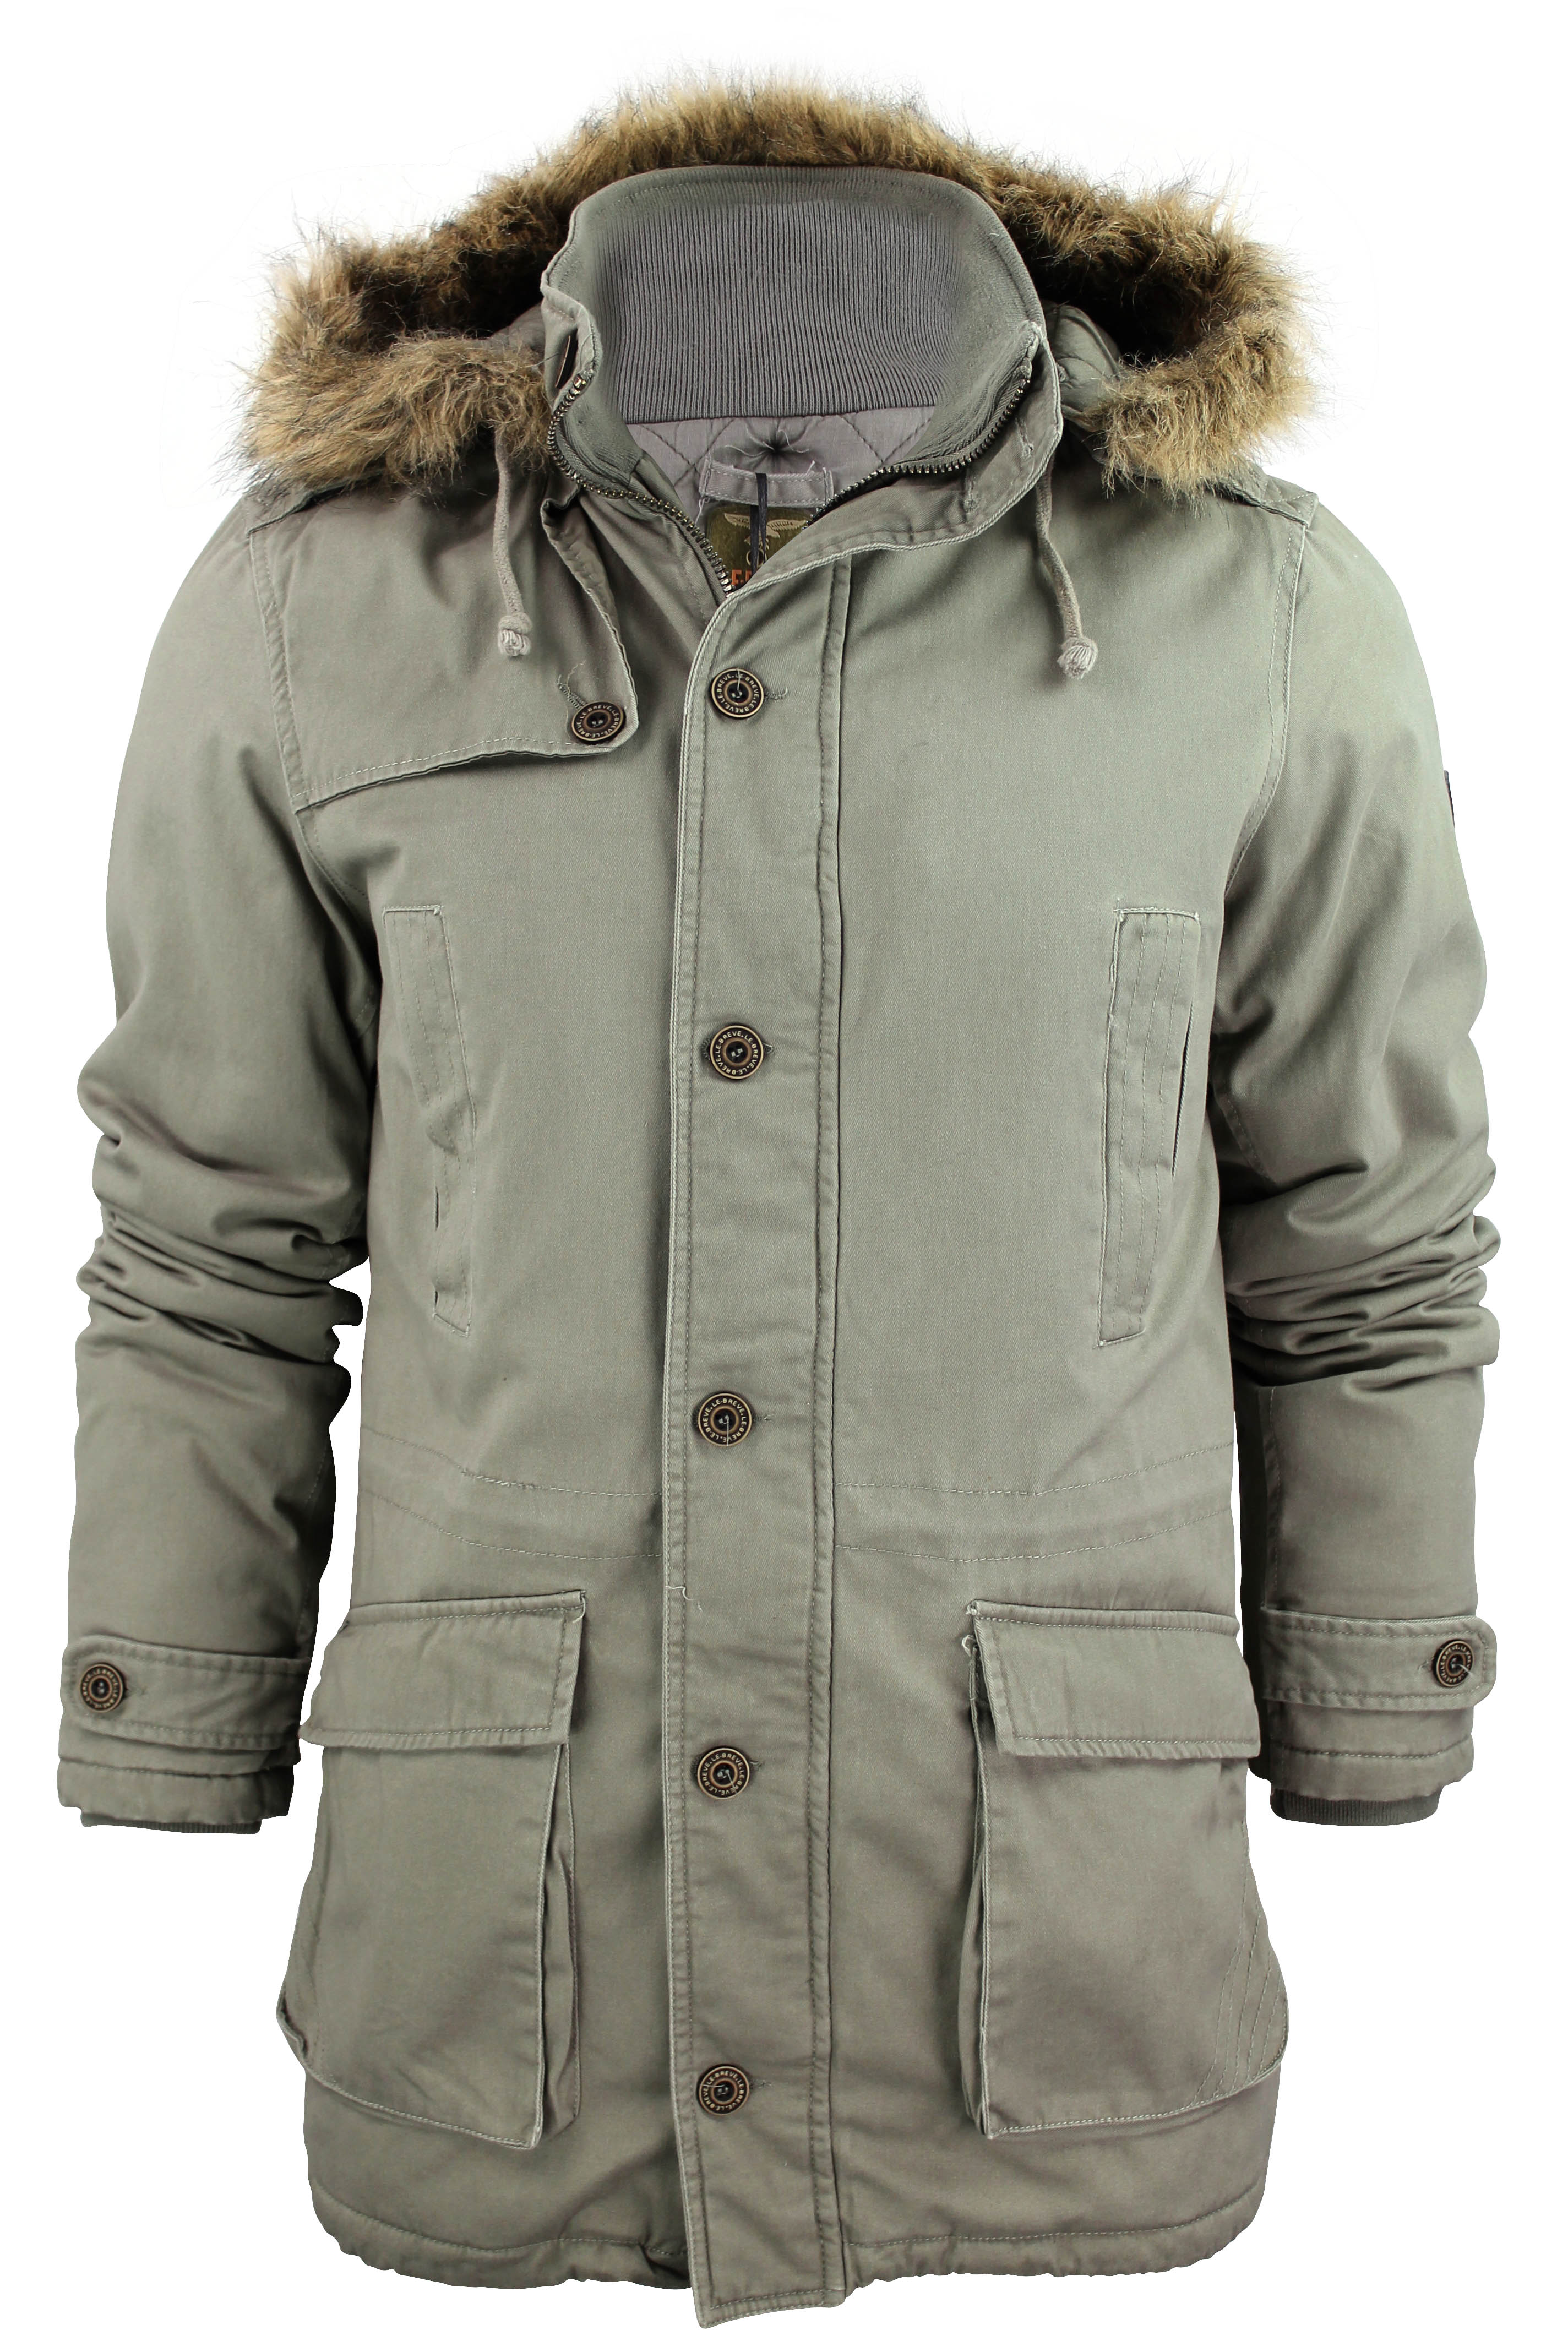 Parka Coat Mens Photo Album - Reikian